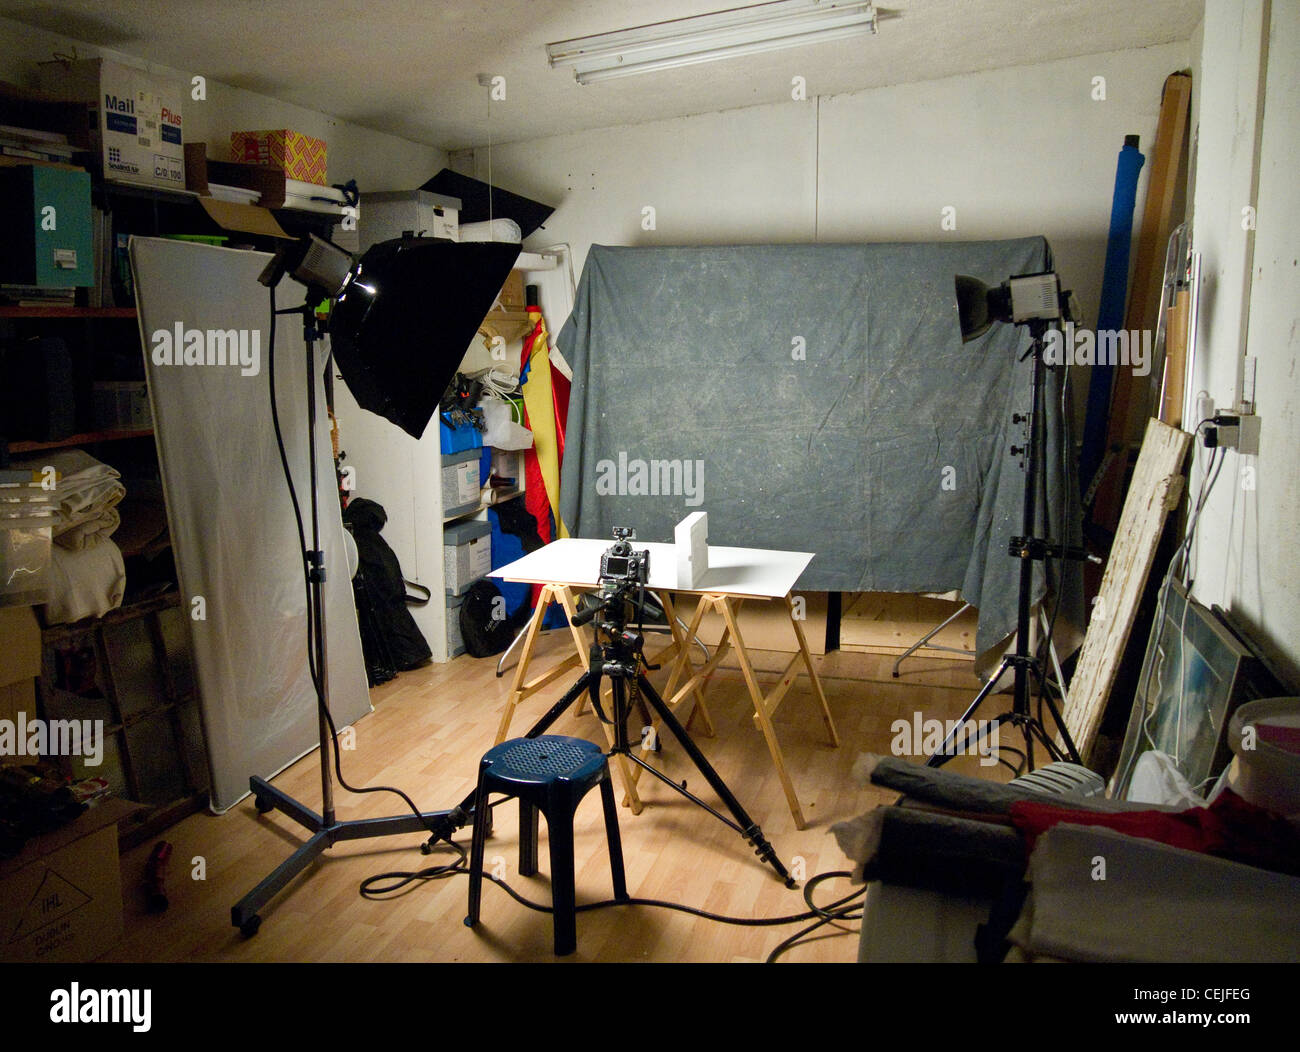 A small messy photographic studio - Stock Image